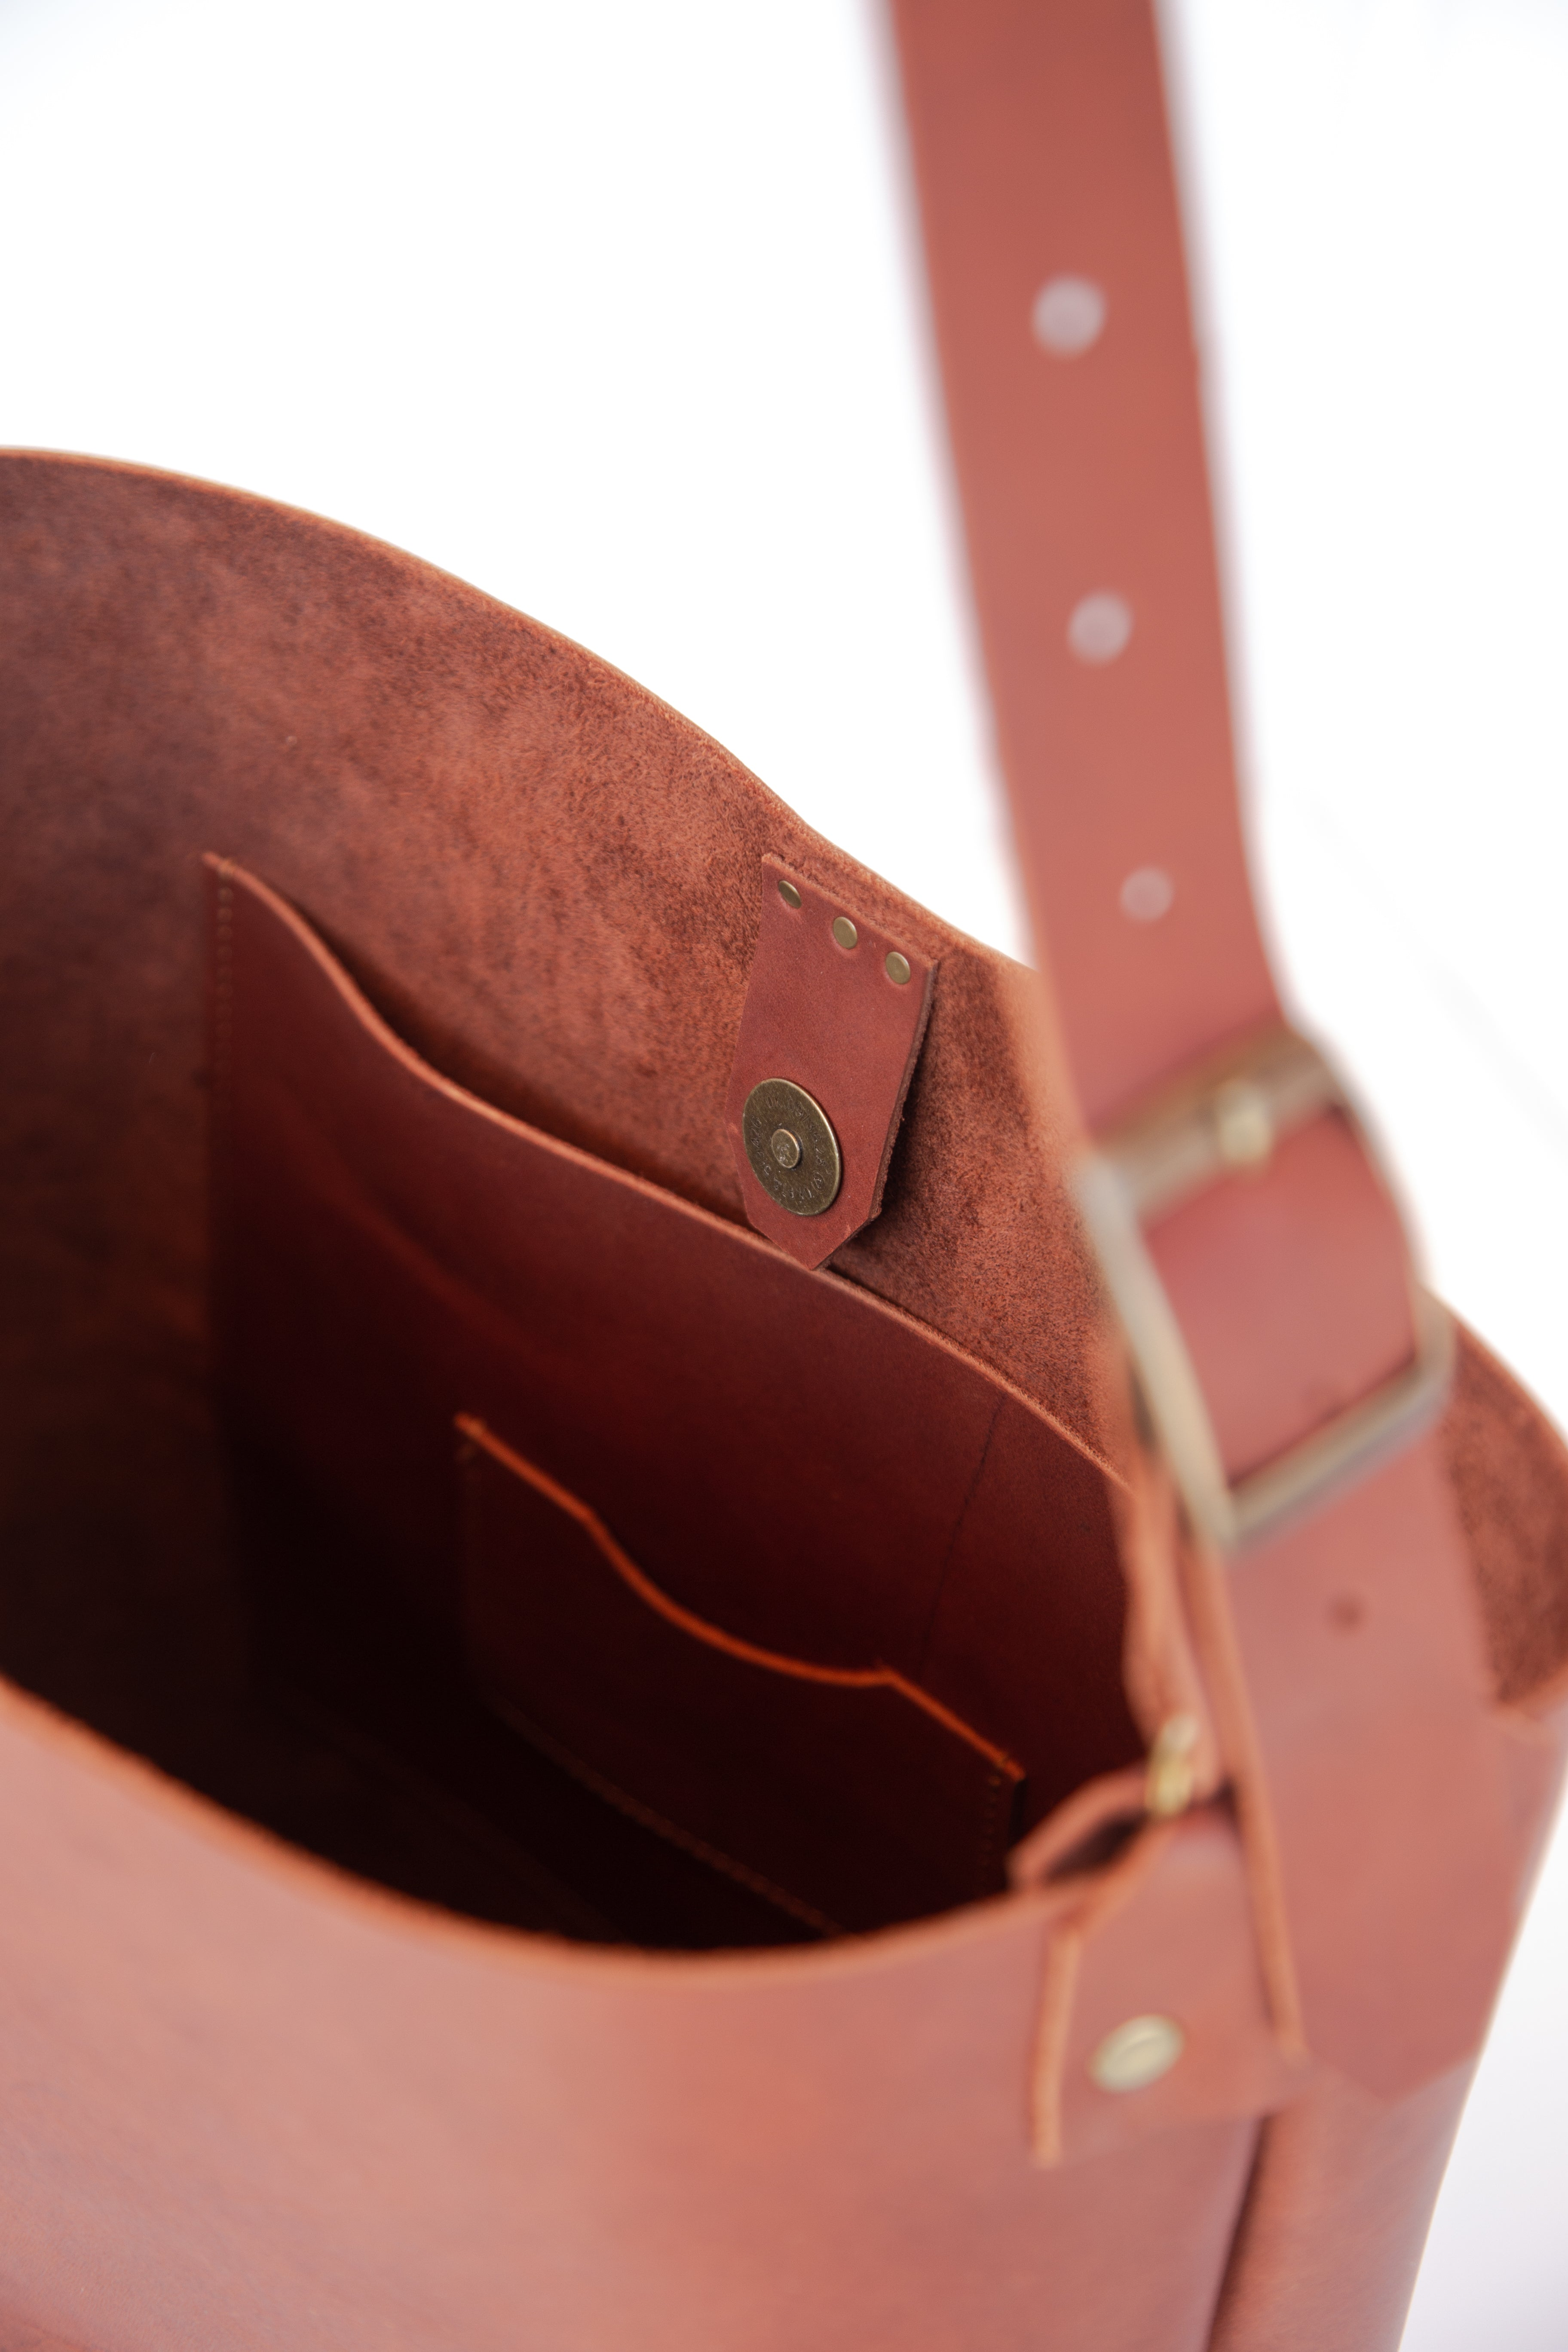 Lady Bag in Cognac Leather - handcrafted by Market Canvas Leather in Tofino, BC, Canada